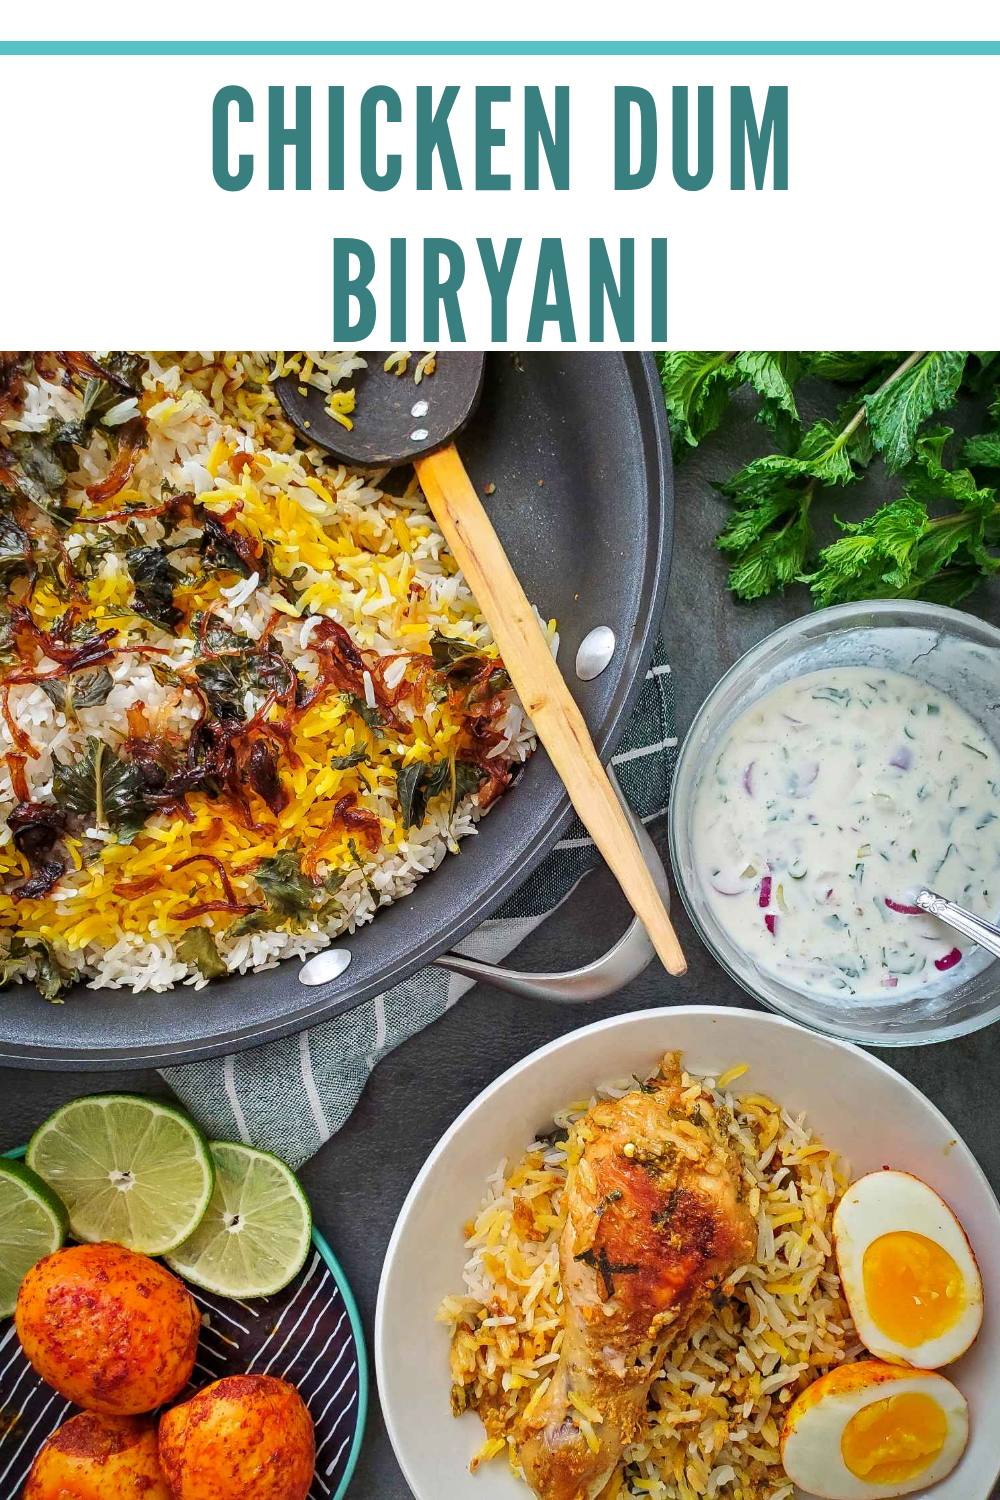 The BEST chicken dum biryani recipe that actually gives you the perfect Biryani every time.